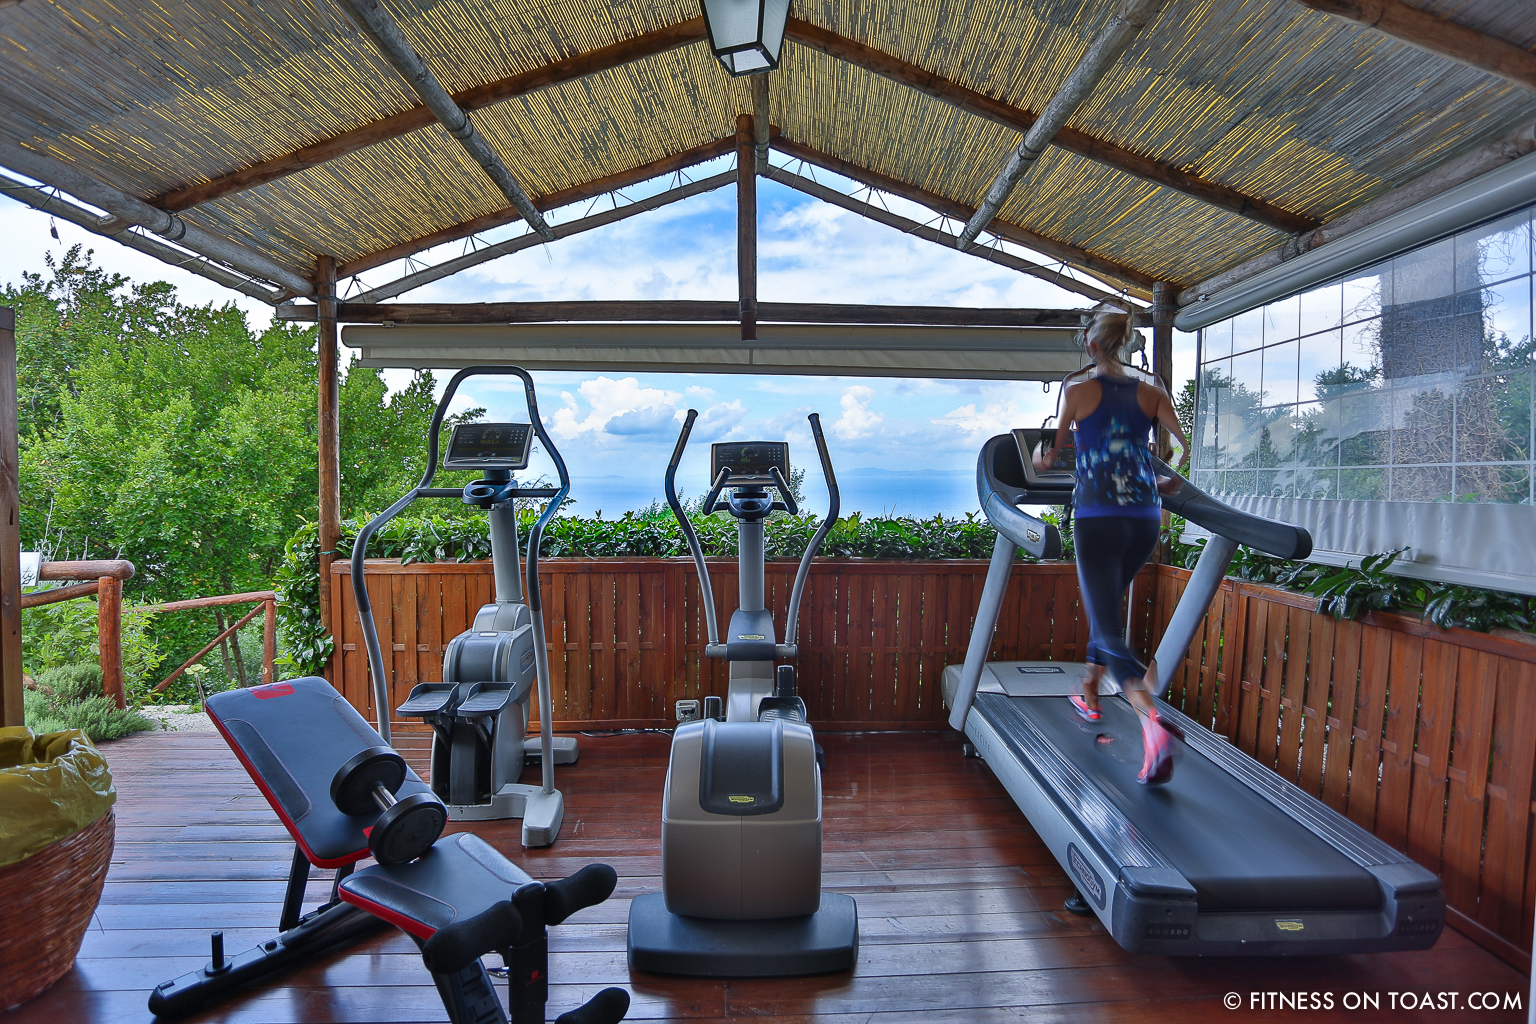 Fitness On Toast Faya Blog Girl Healthy Active Training Gym Workout Escape Break Holiday Travel Luxury Hotel Caesar Augustus Italy Capri Review What To Do Stay Health-29